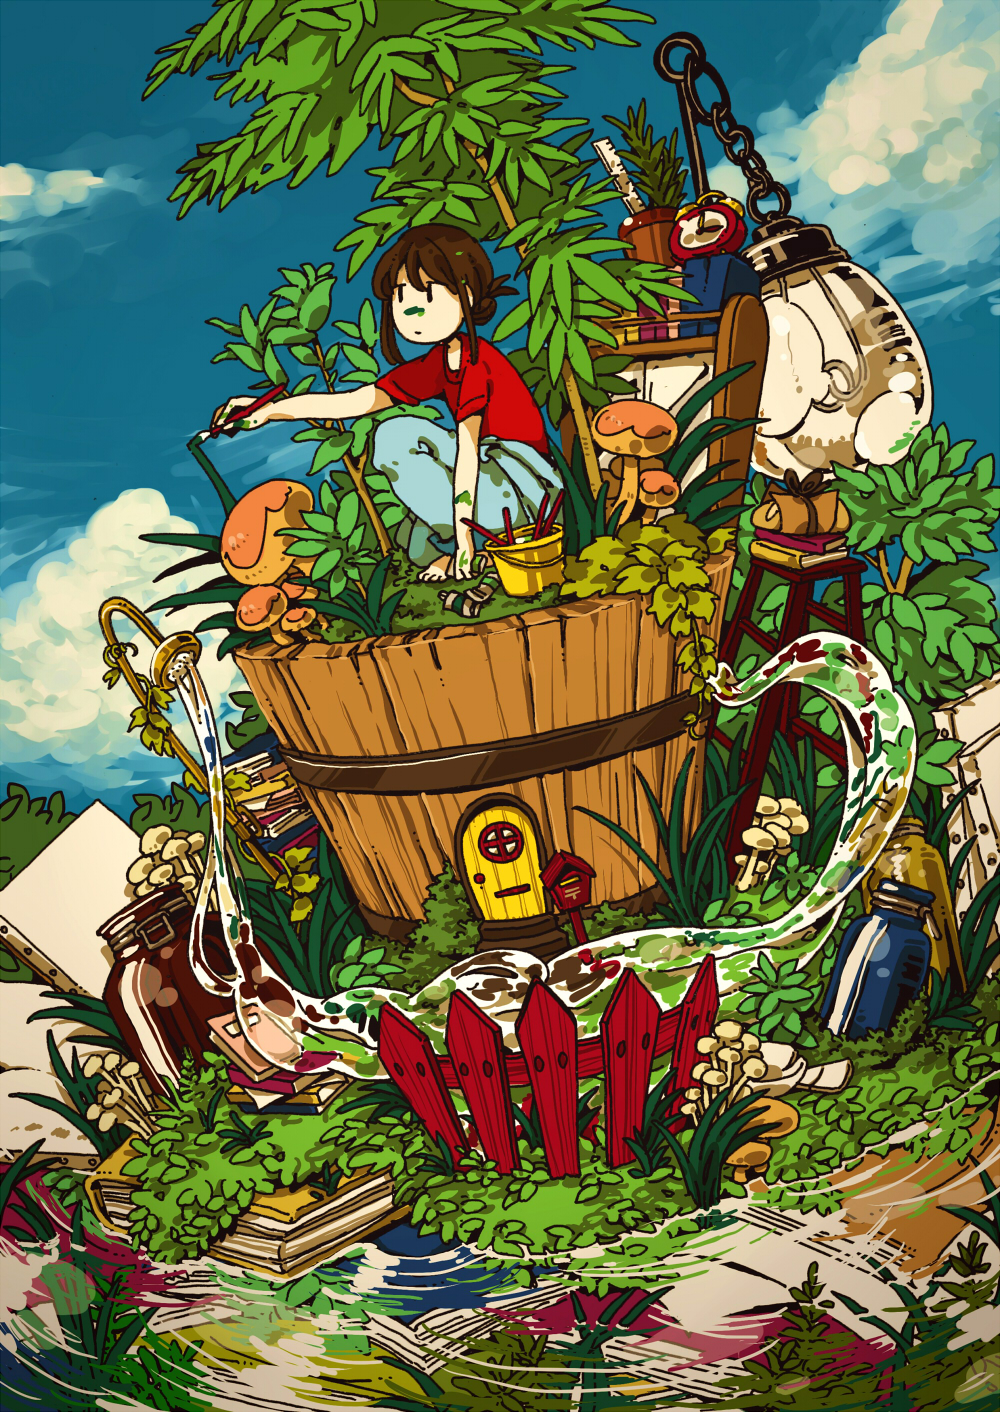 1girl alarm_clock barefoot black_hair blue_pants blue_sky book bucket chain clock clouds cloudy_sky door fence floating hasha highres jar leaf light_bulb mushroom original paint painting pants plant red_shirt ruler shirt short_hair short_sleeves sky solo squatting water wide_shot